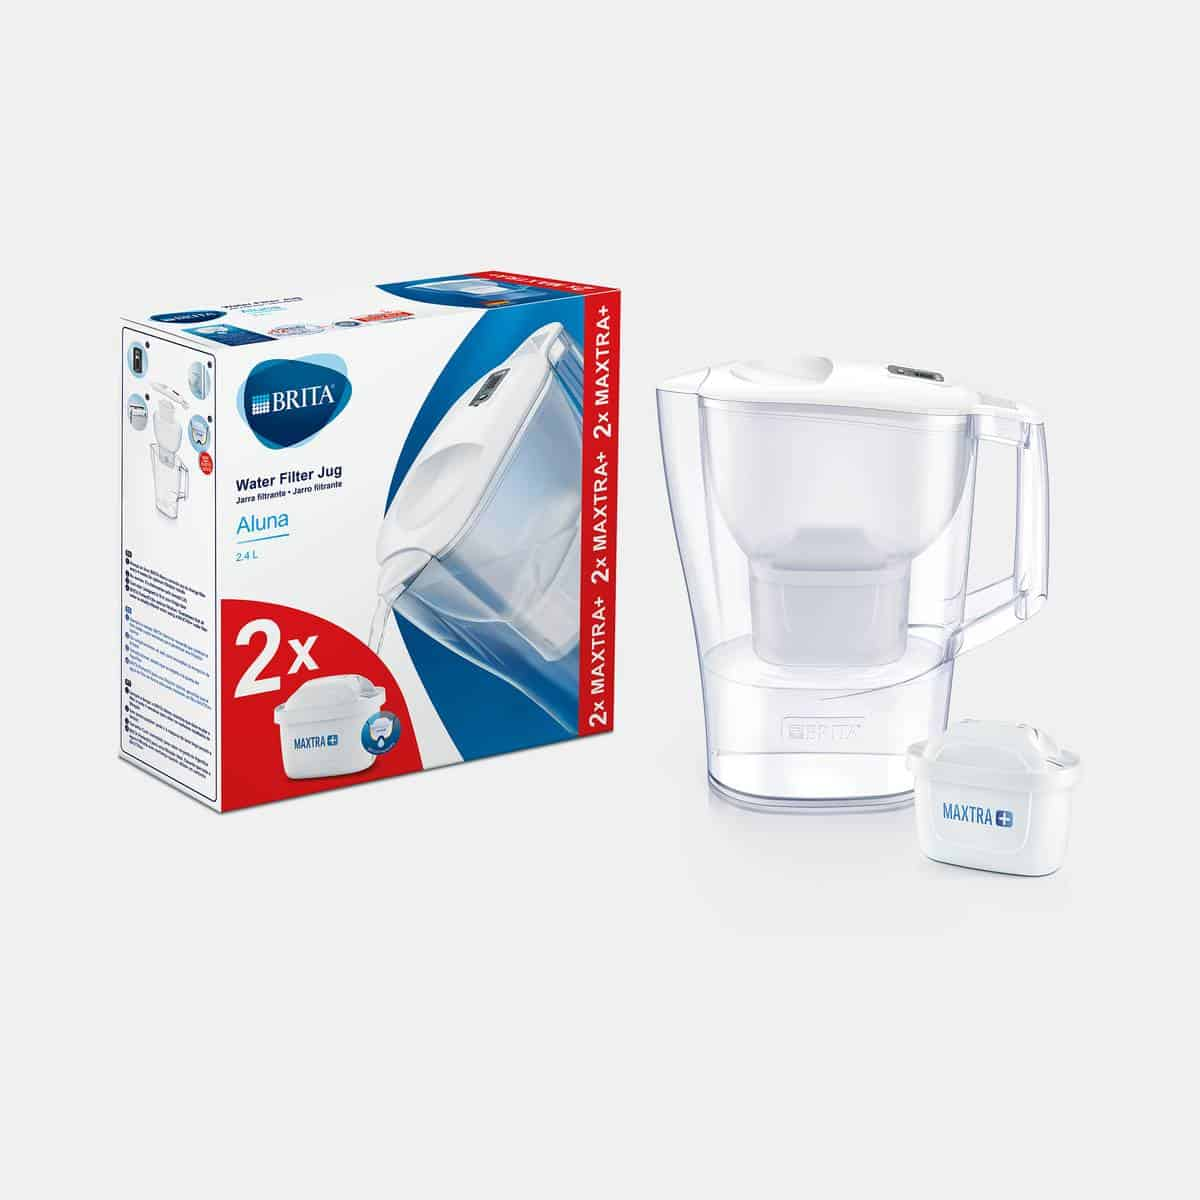 BRITA Aluna mxplus white water filter jug